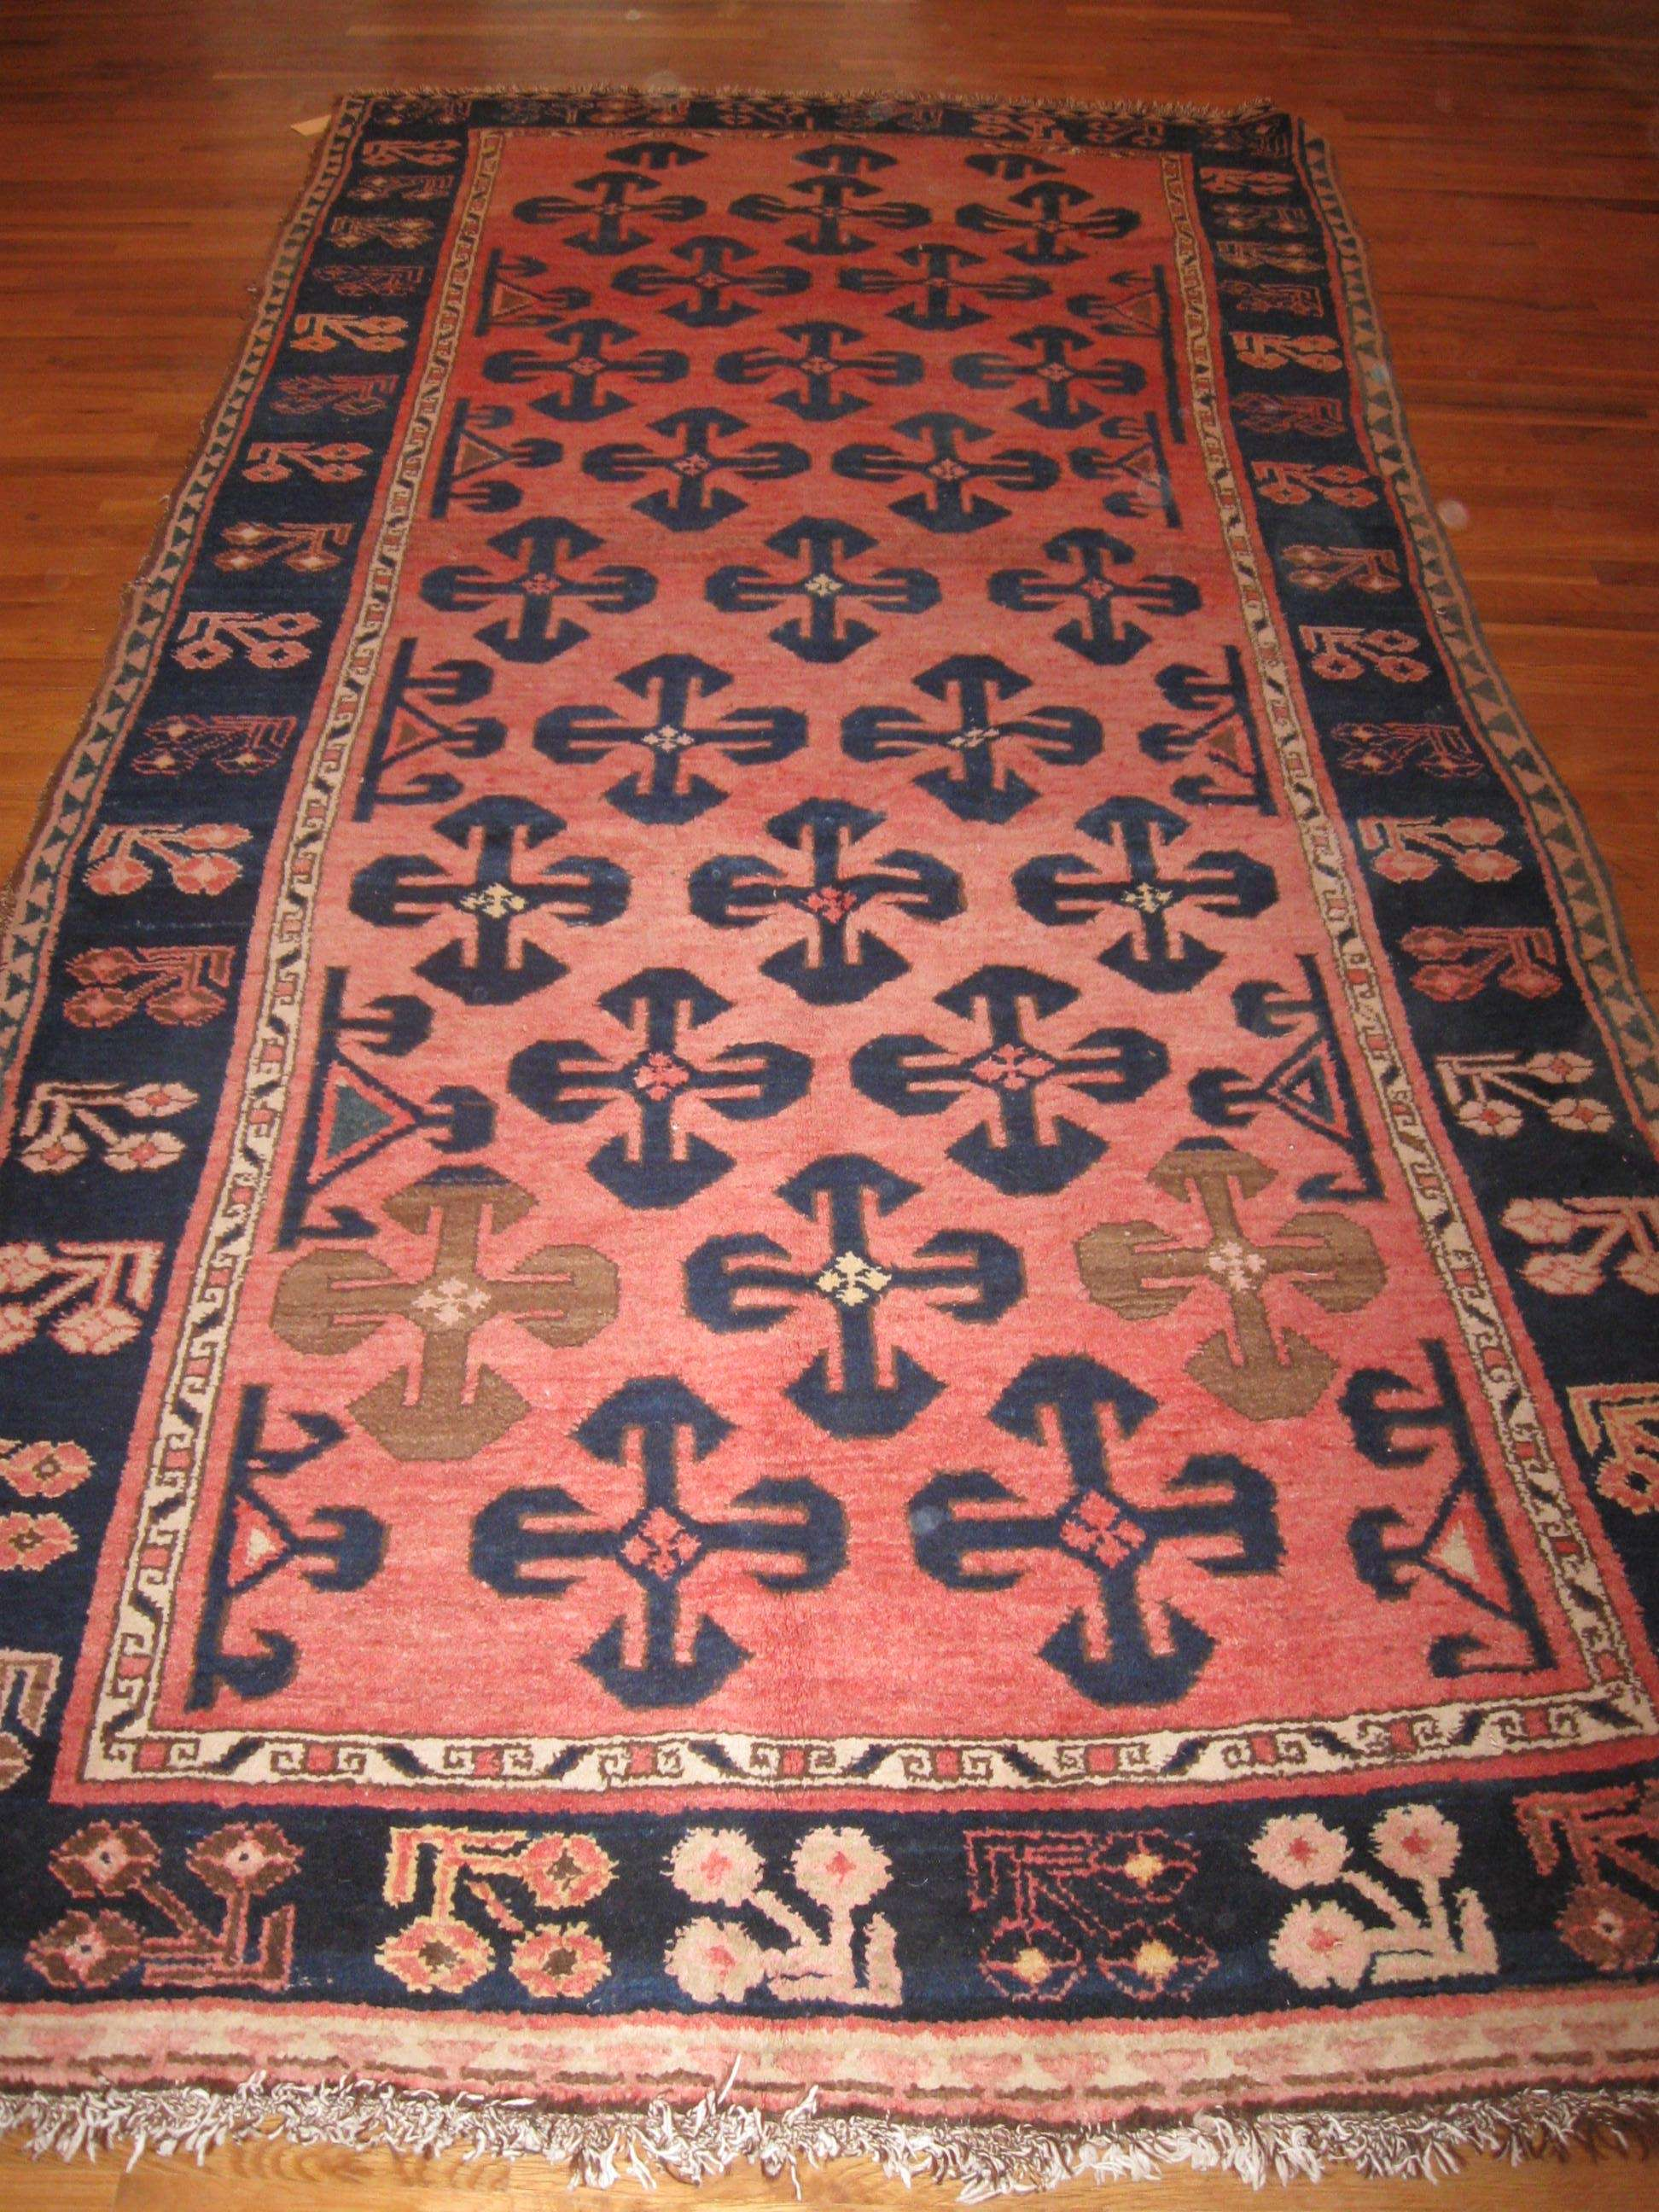 Khotan Rug | East Turkestan | Antique, Circa 1910